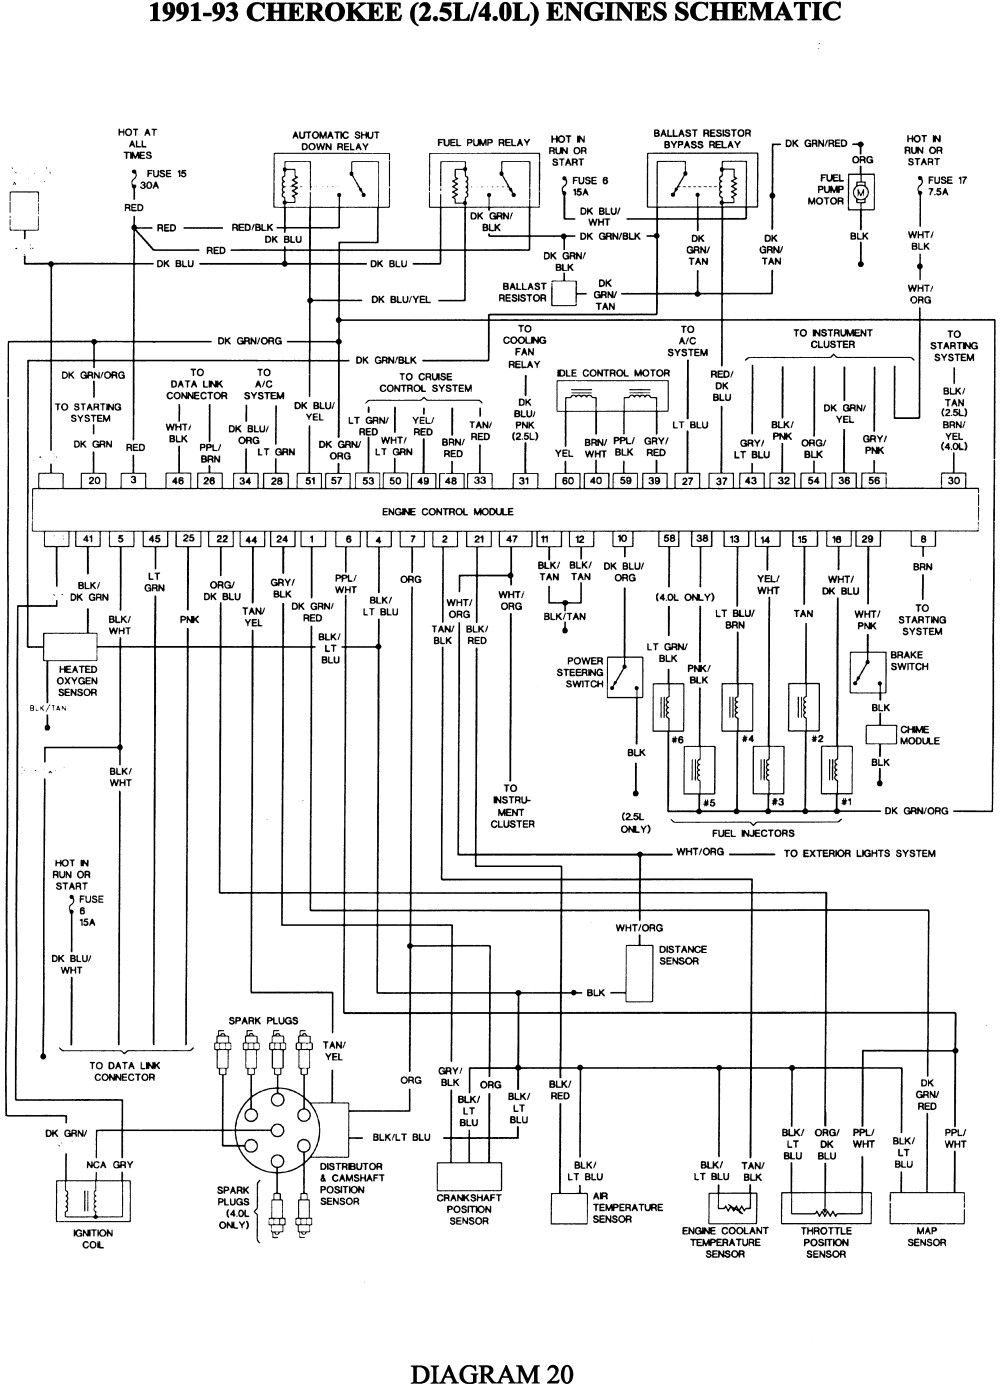 2001 jeep liberty wiring diagram - headlight wiring diagram for 2000 gmc  sonoma - bullet-squier.nescafe.jeanjaures37.fr  wiring diagram resource